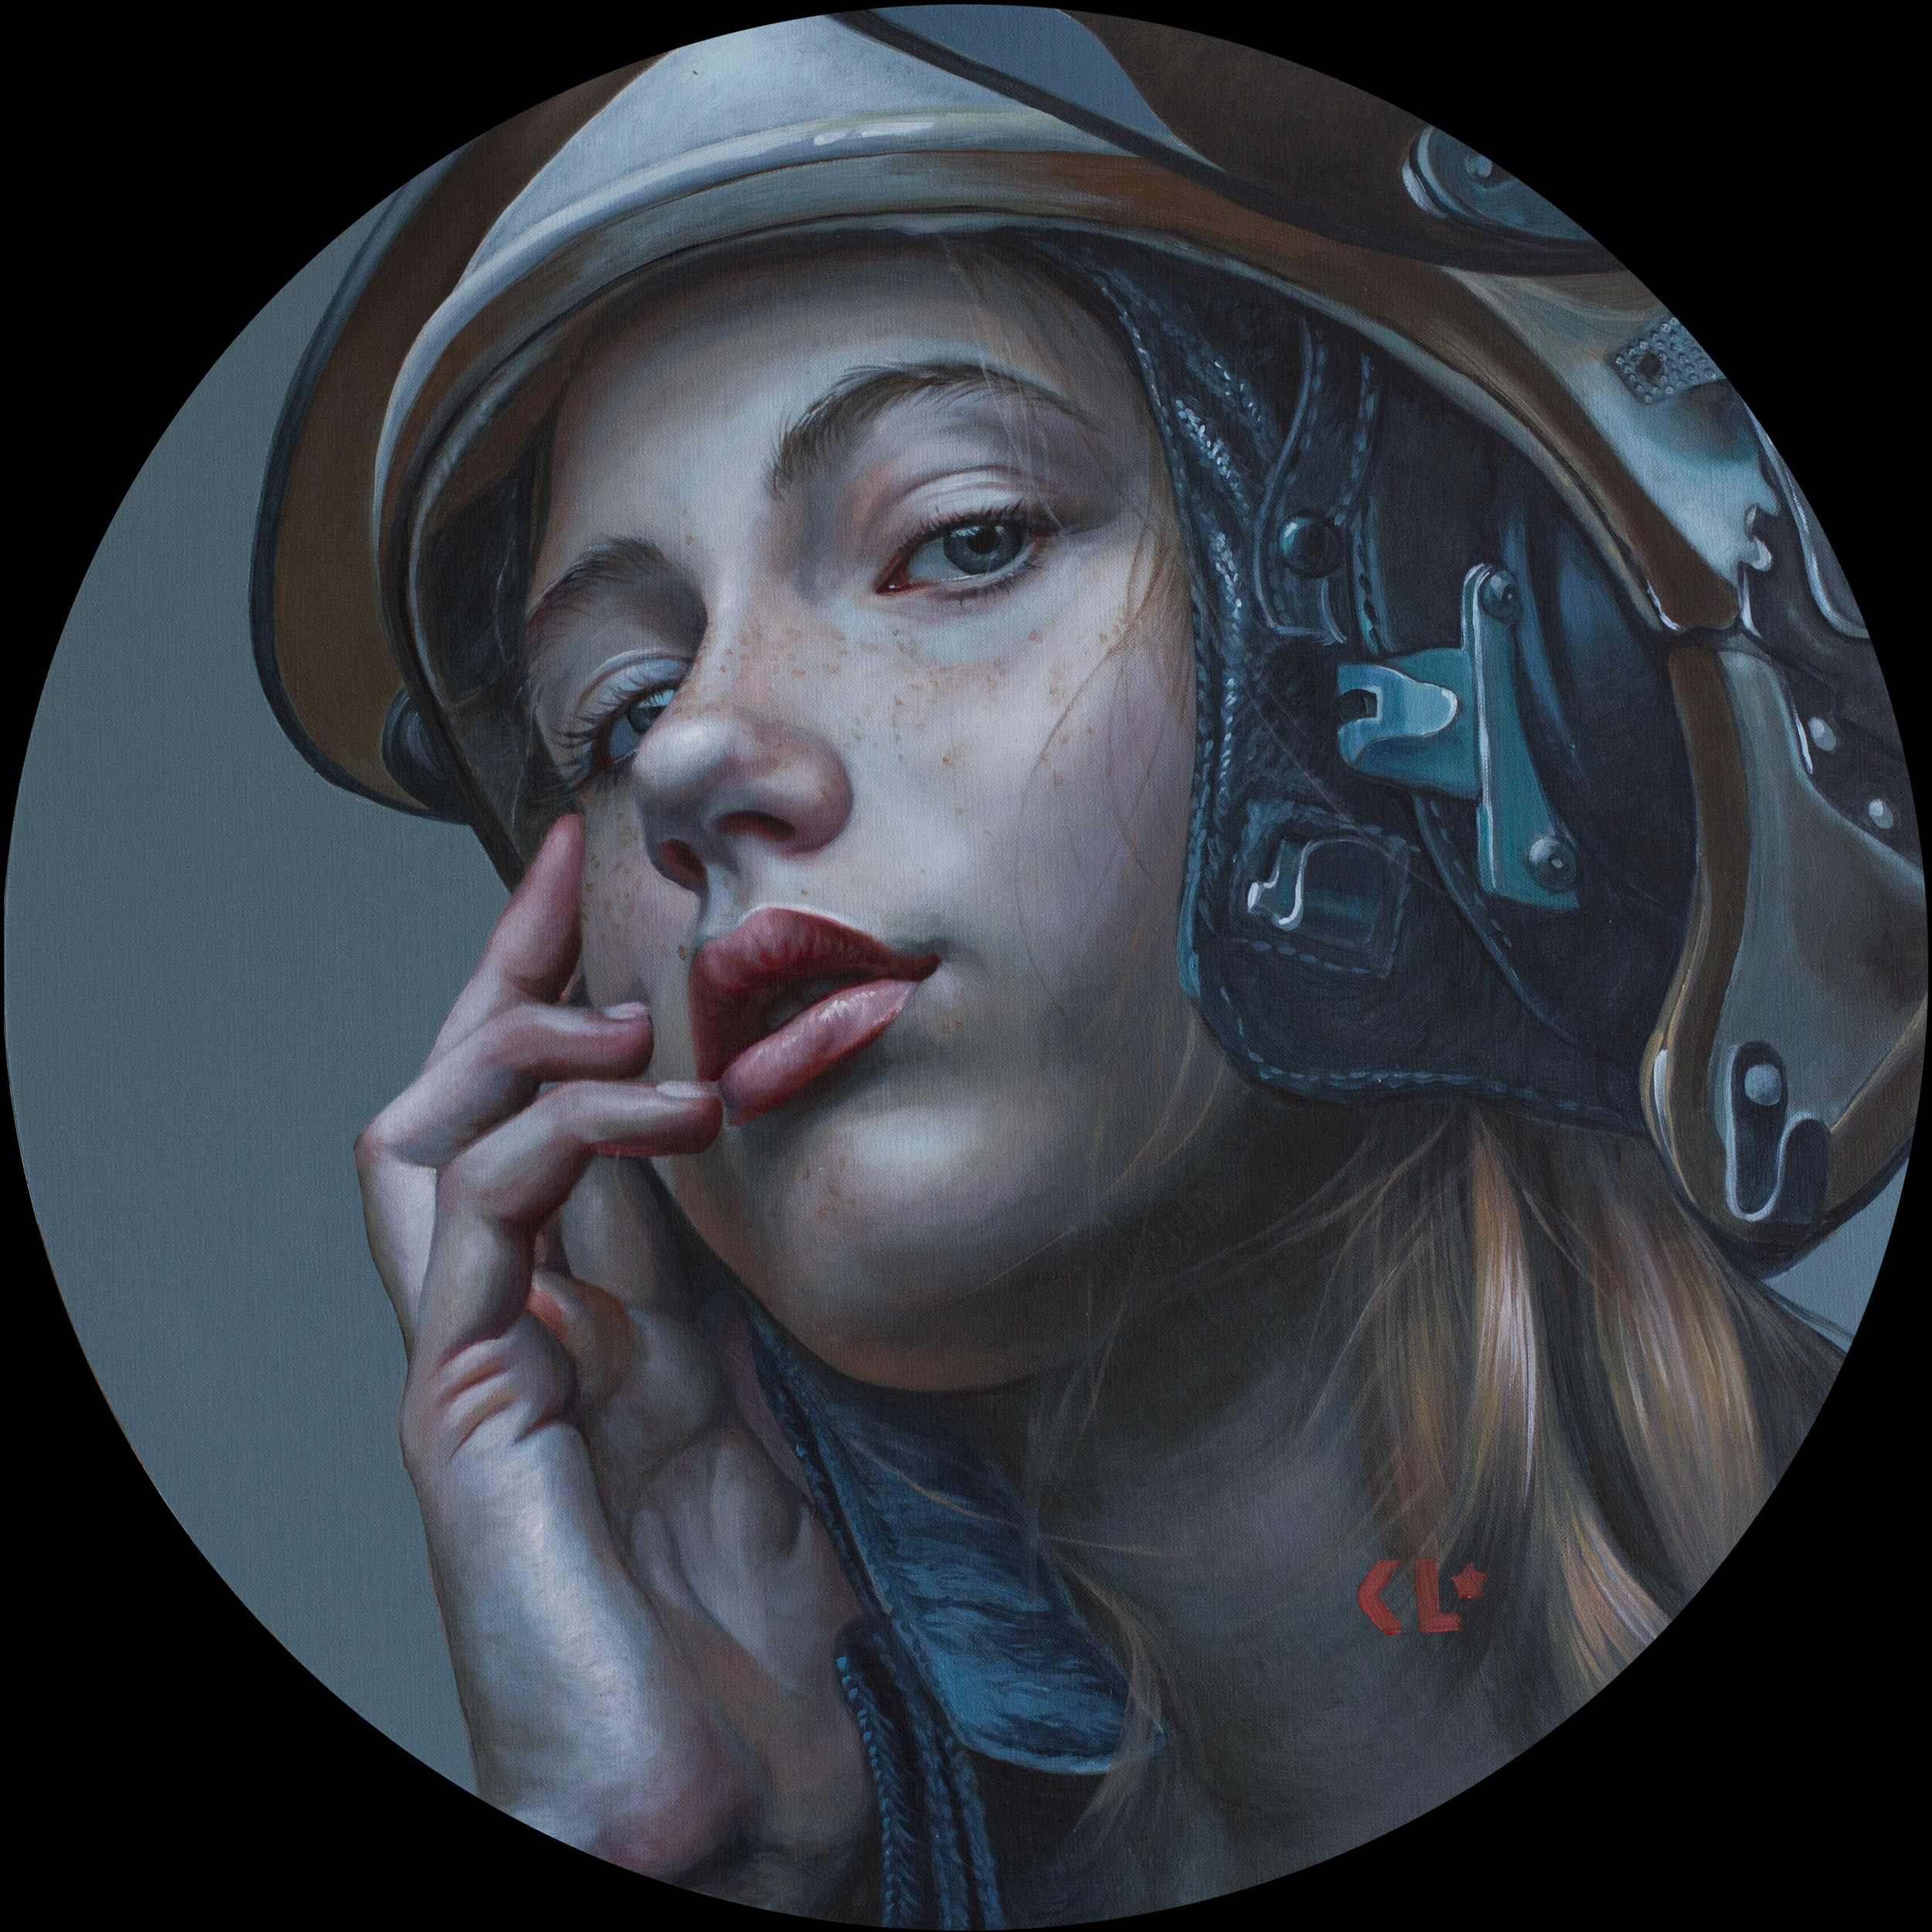 Kathrin Longhurst |  So long baby  | oil on ACM panel | 24 inches